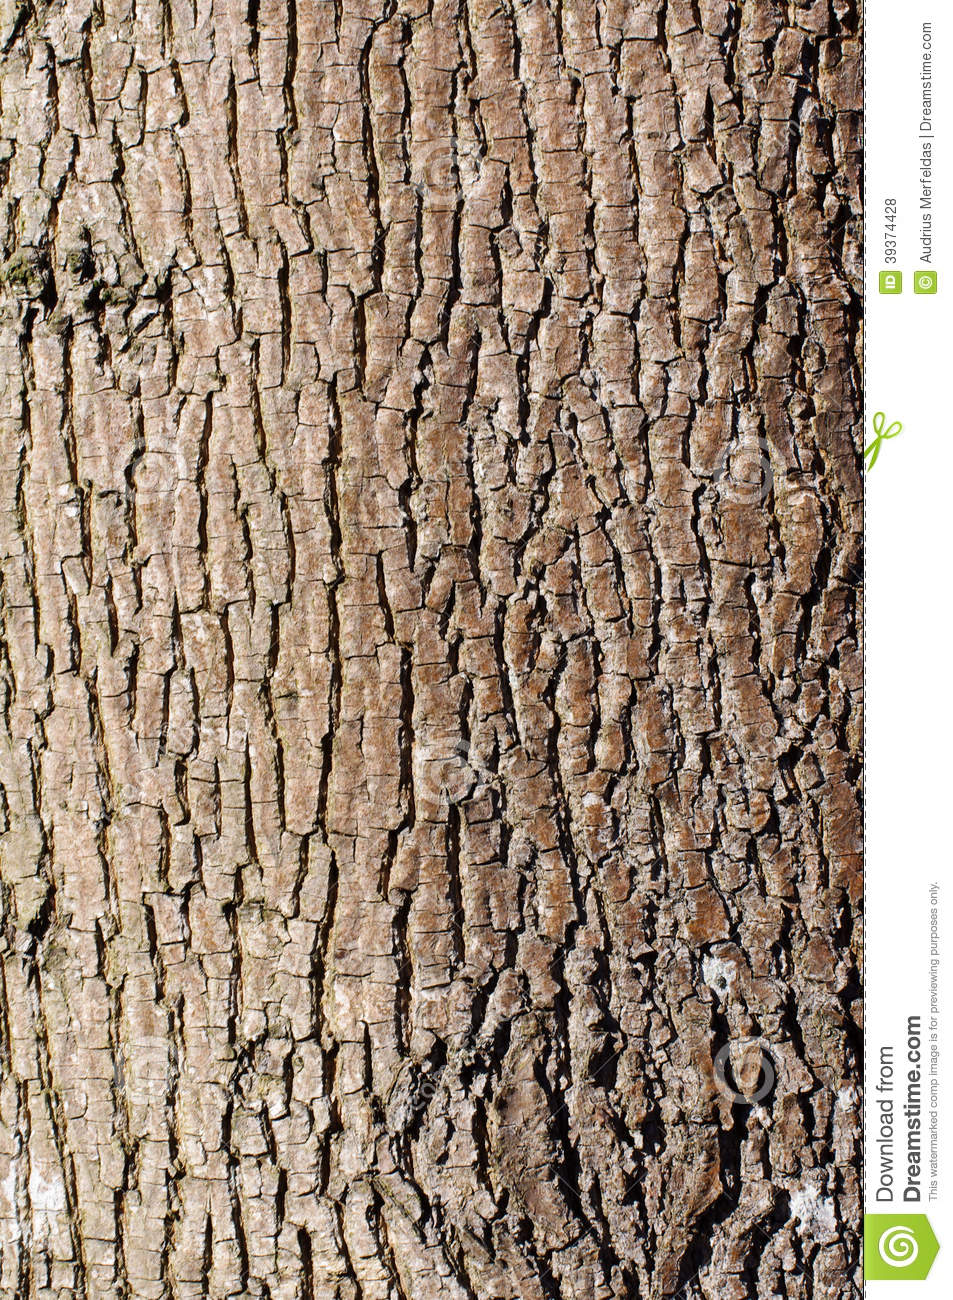 Brown Tree Bark Texture In Portrait Orientation Stock